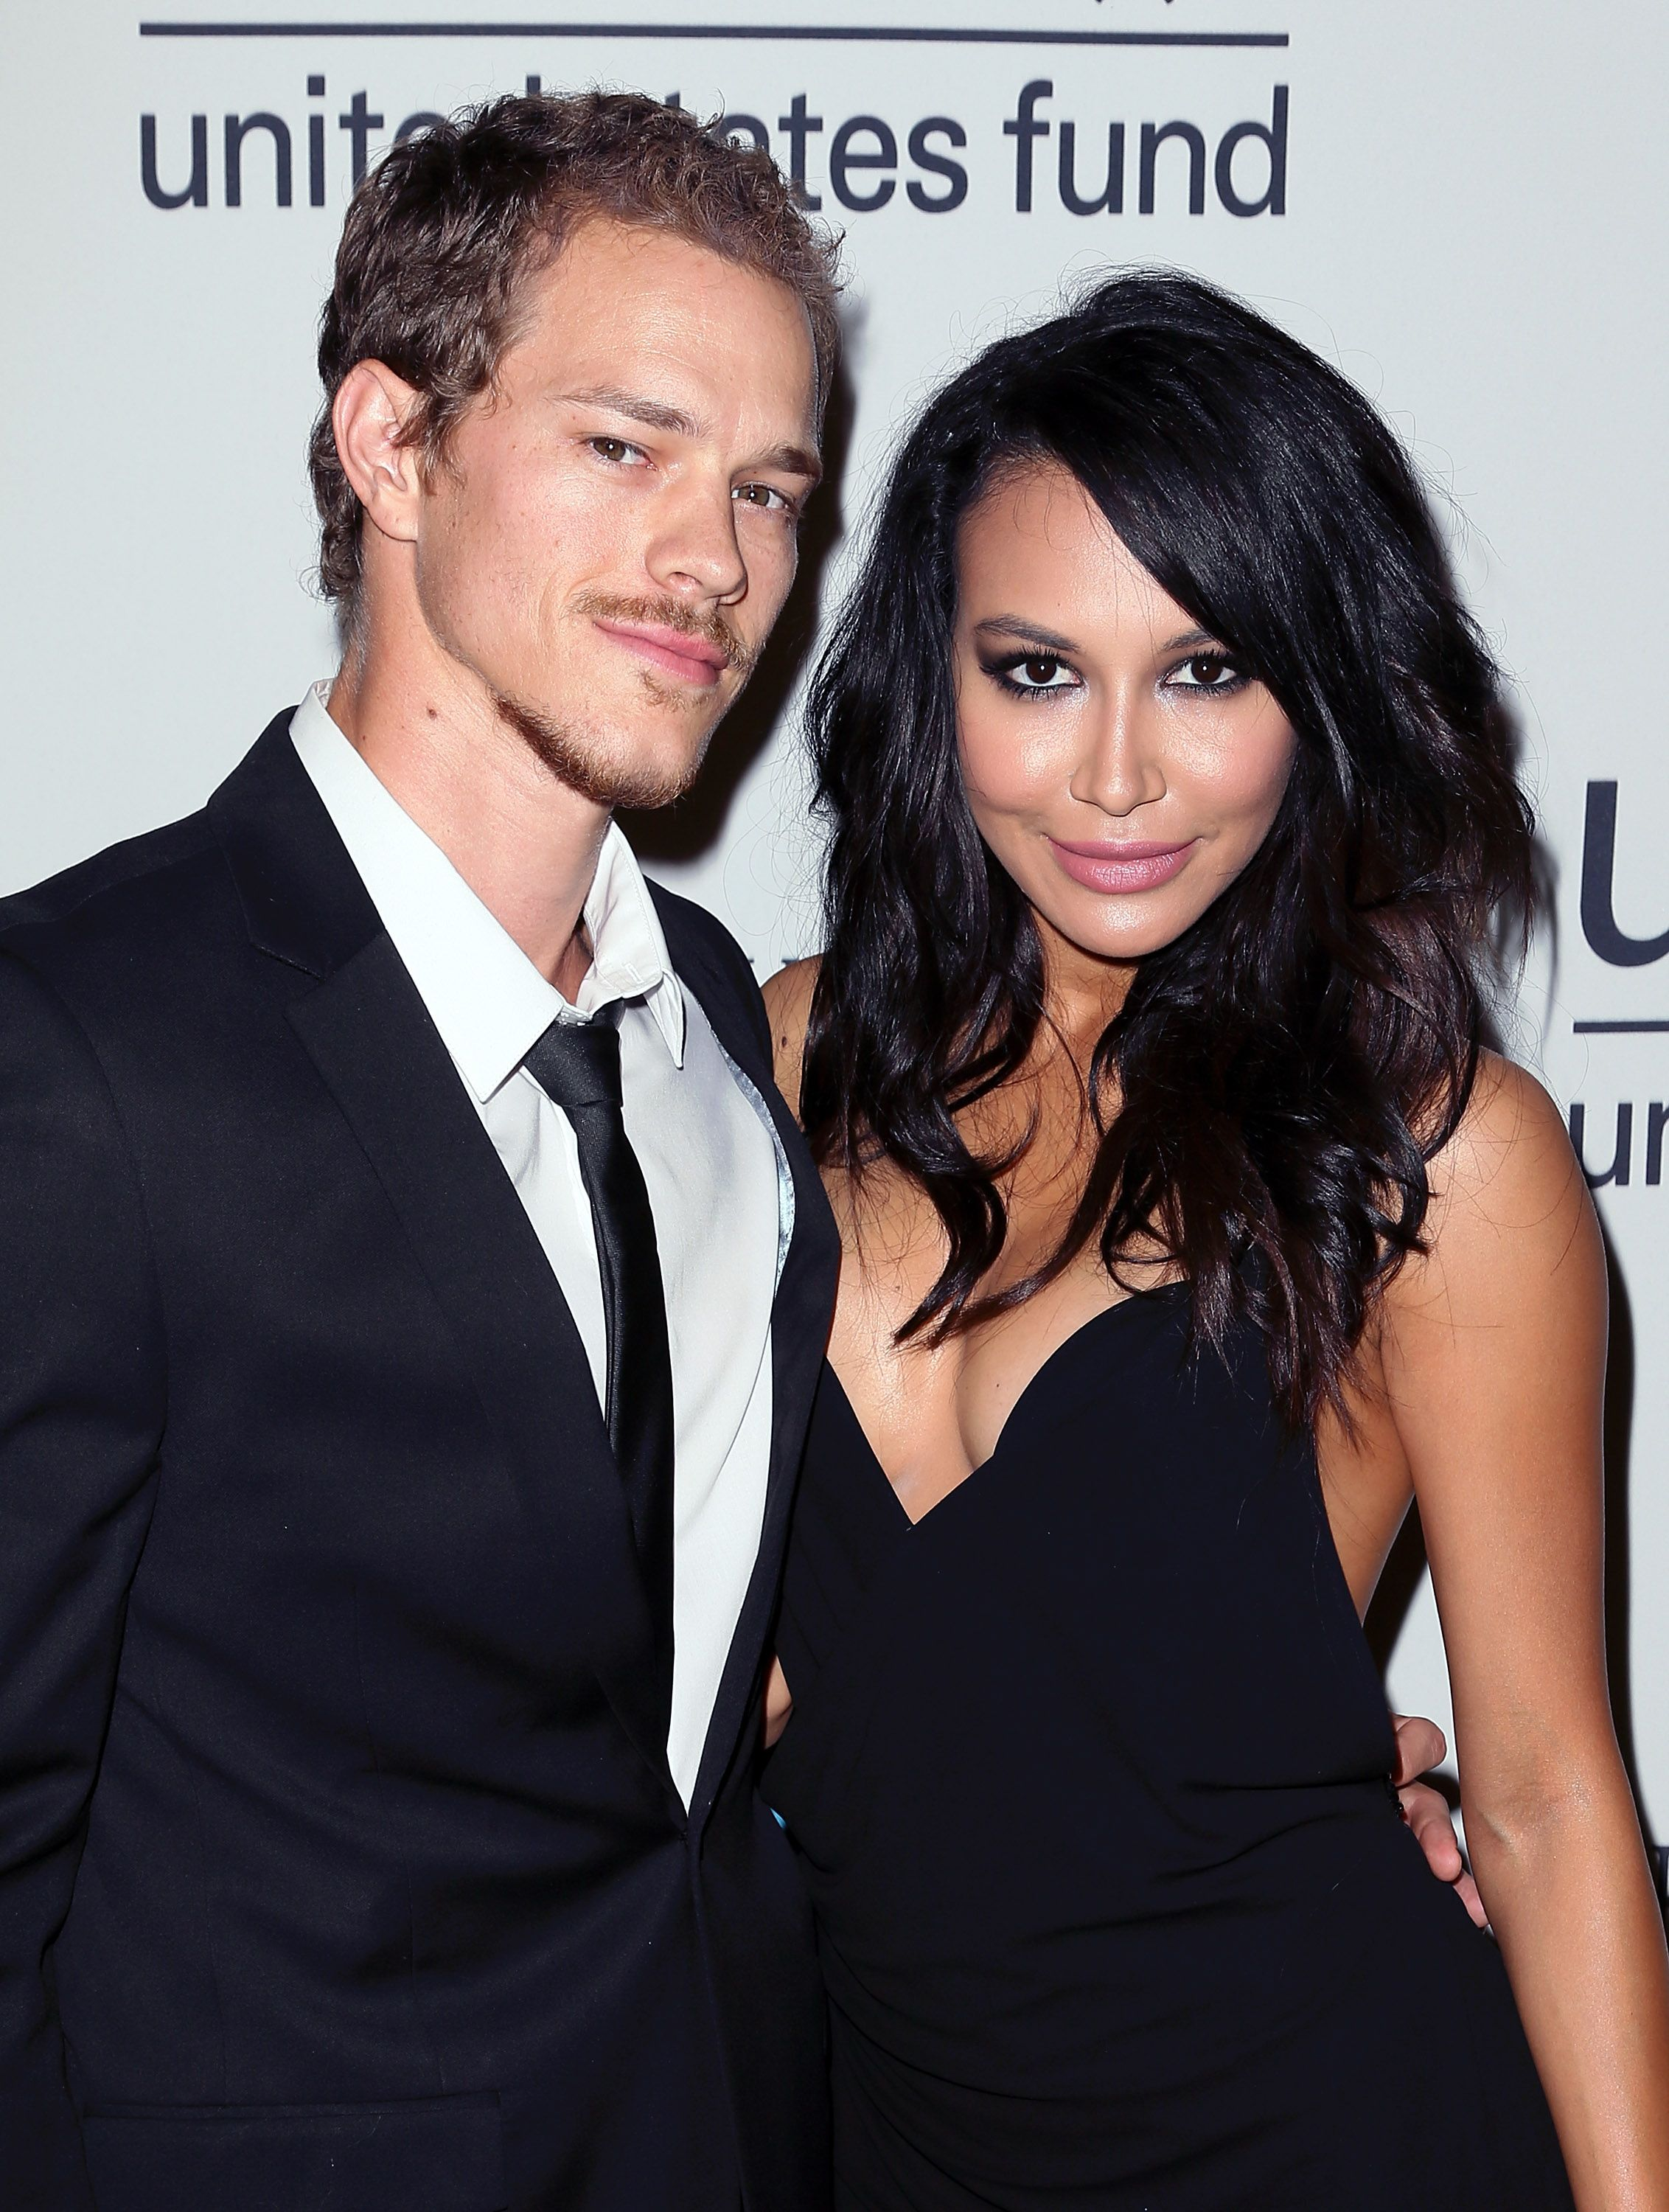 Ryan Dorsey and the late Naya Rivera at the UNICEF's Next Generation's 2nd Annual UNICEF Masquerade Ball at Hollywood Forever Cemetery on October 30, 2014 in Los Angeles, California | Photo: Getty Images